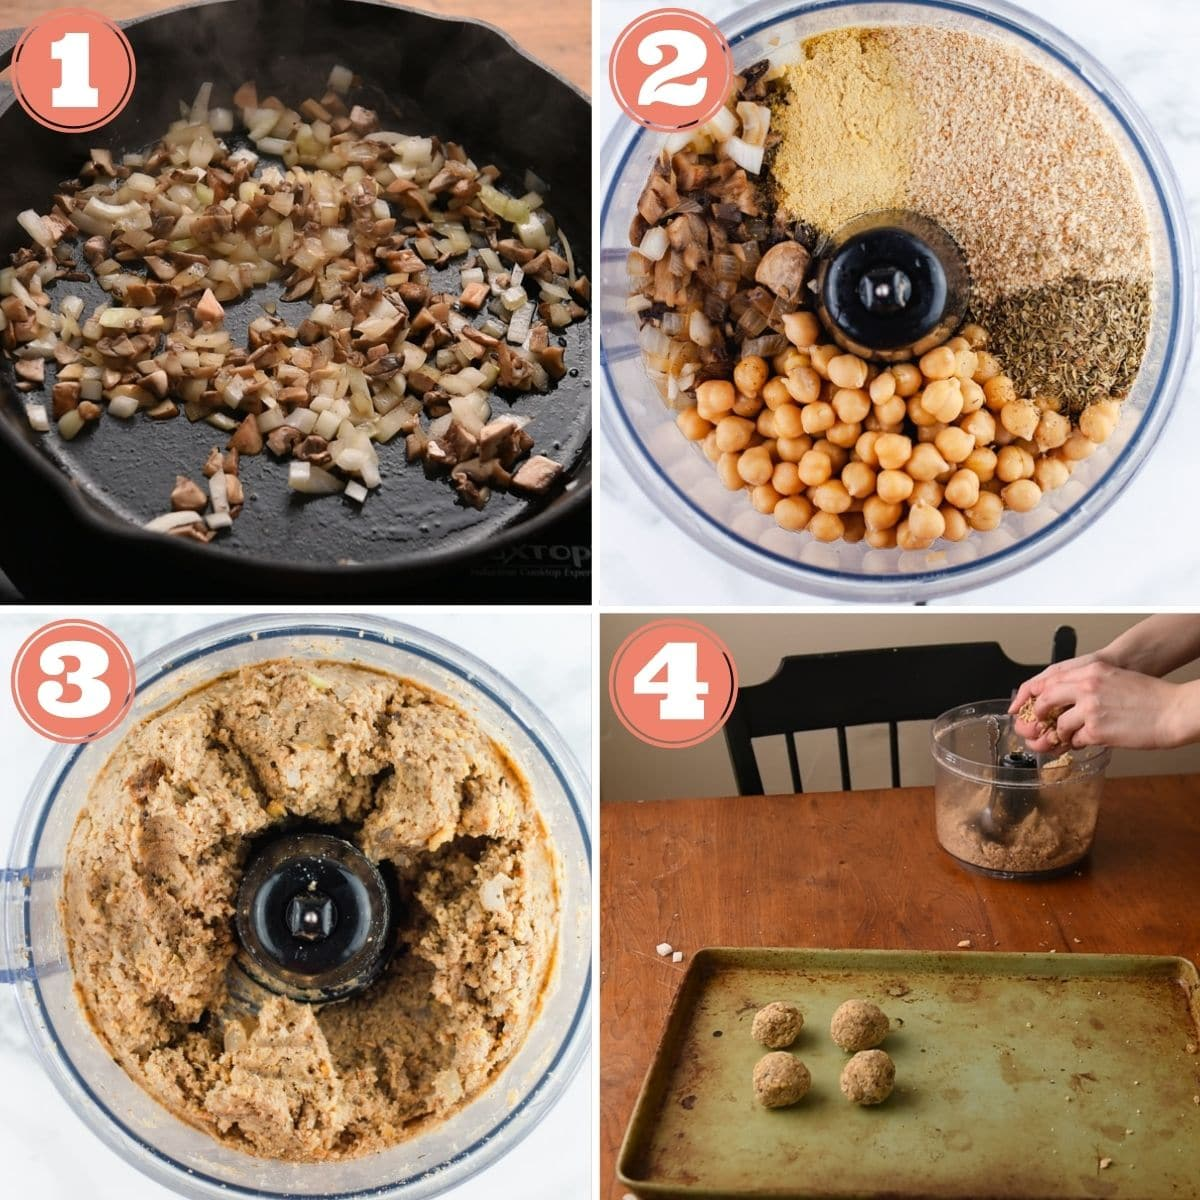 Steps 1 through 4 to make vegan meatballs